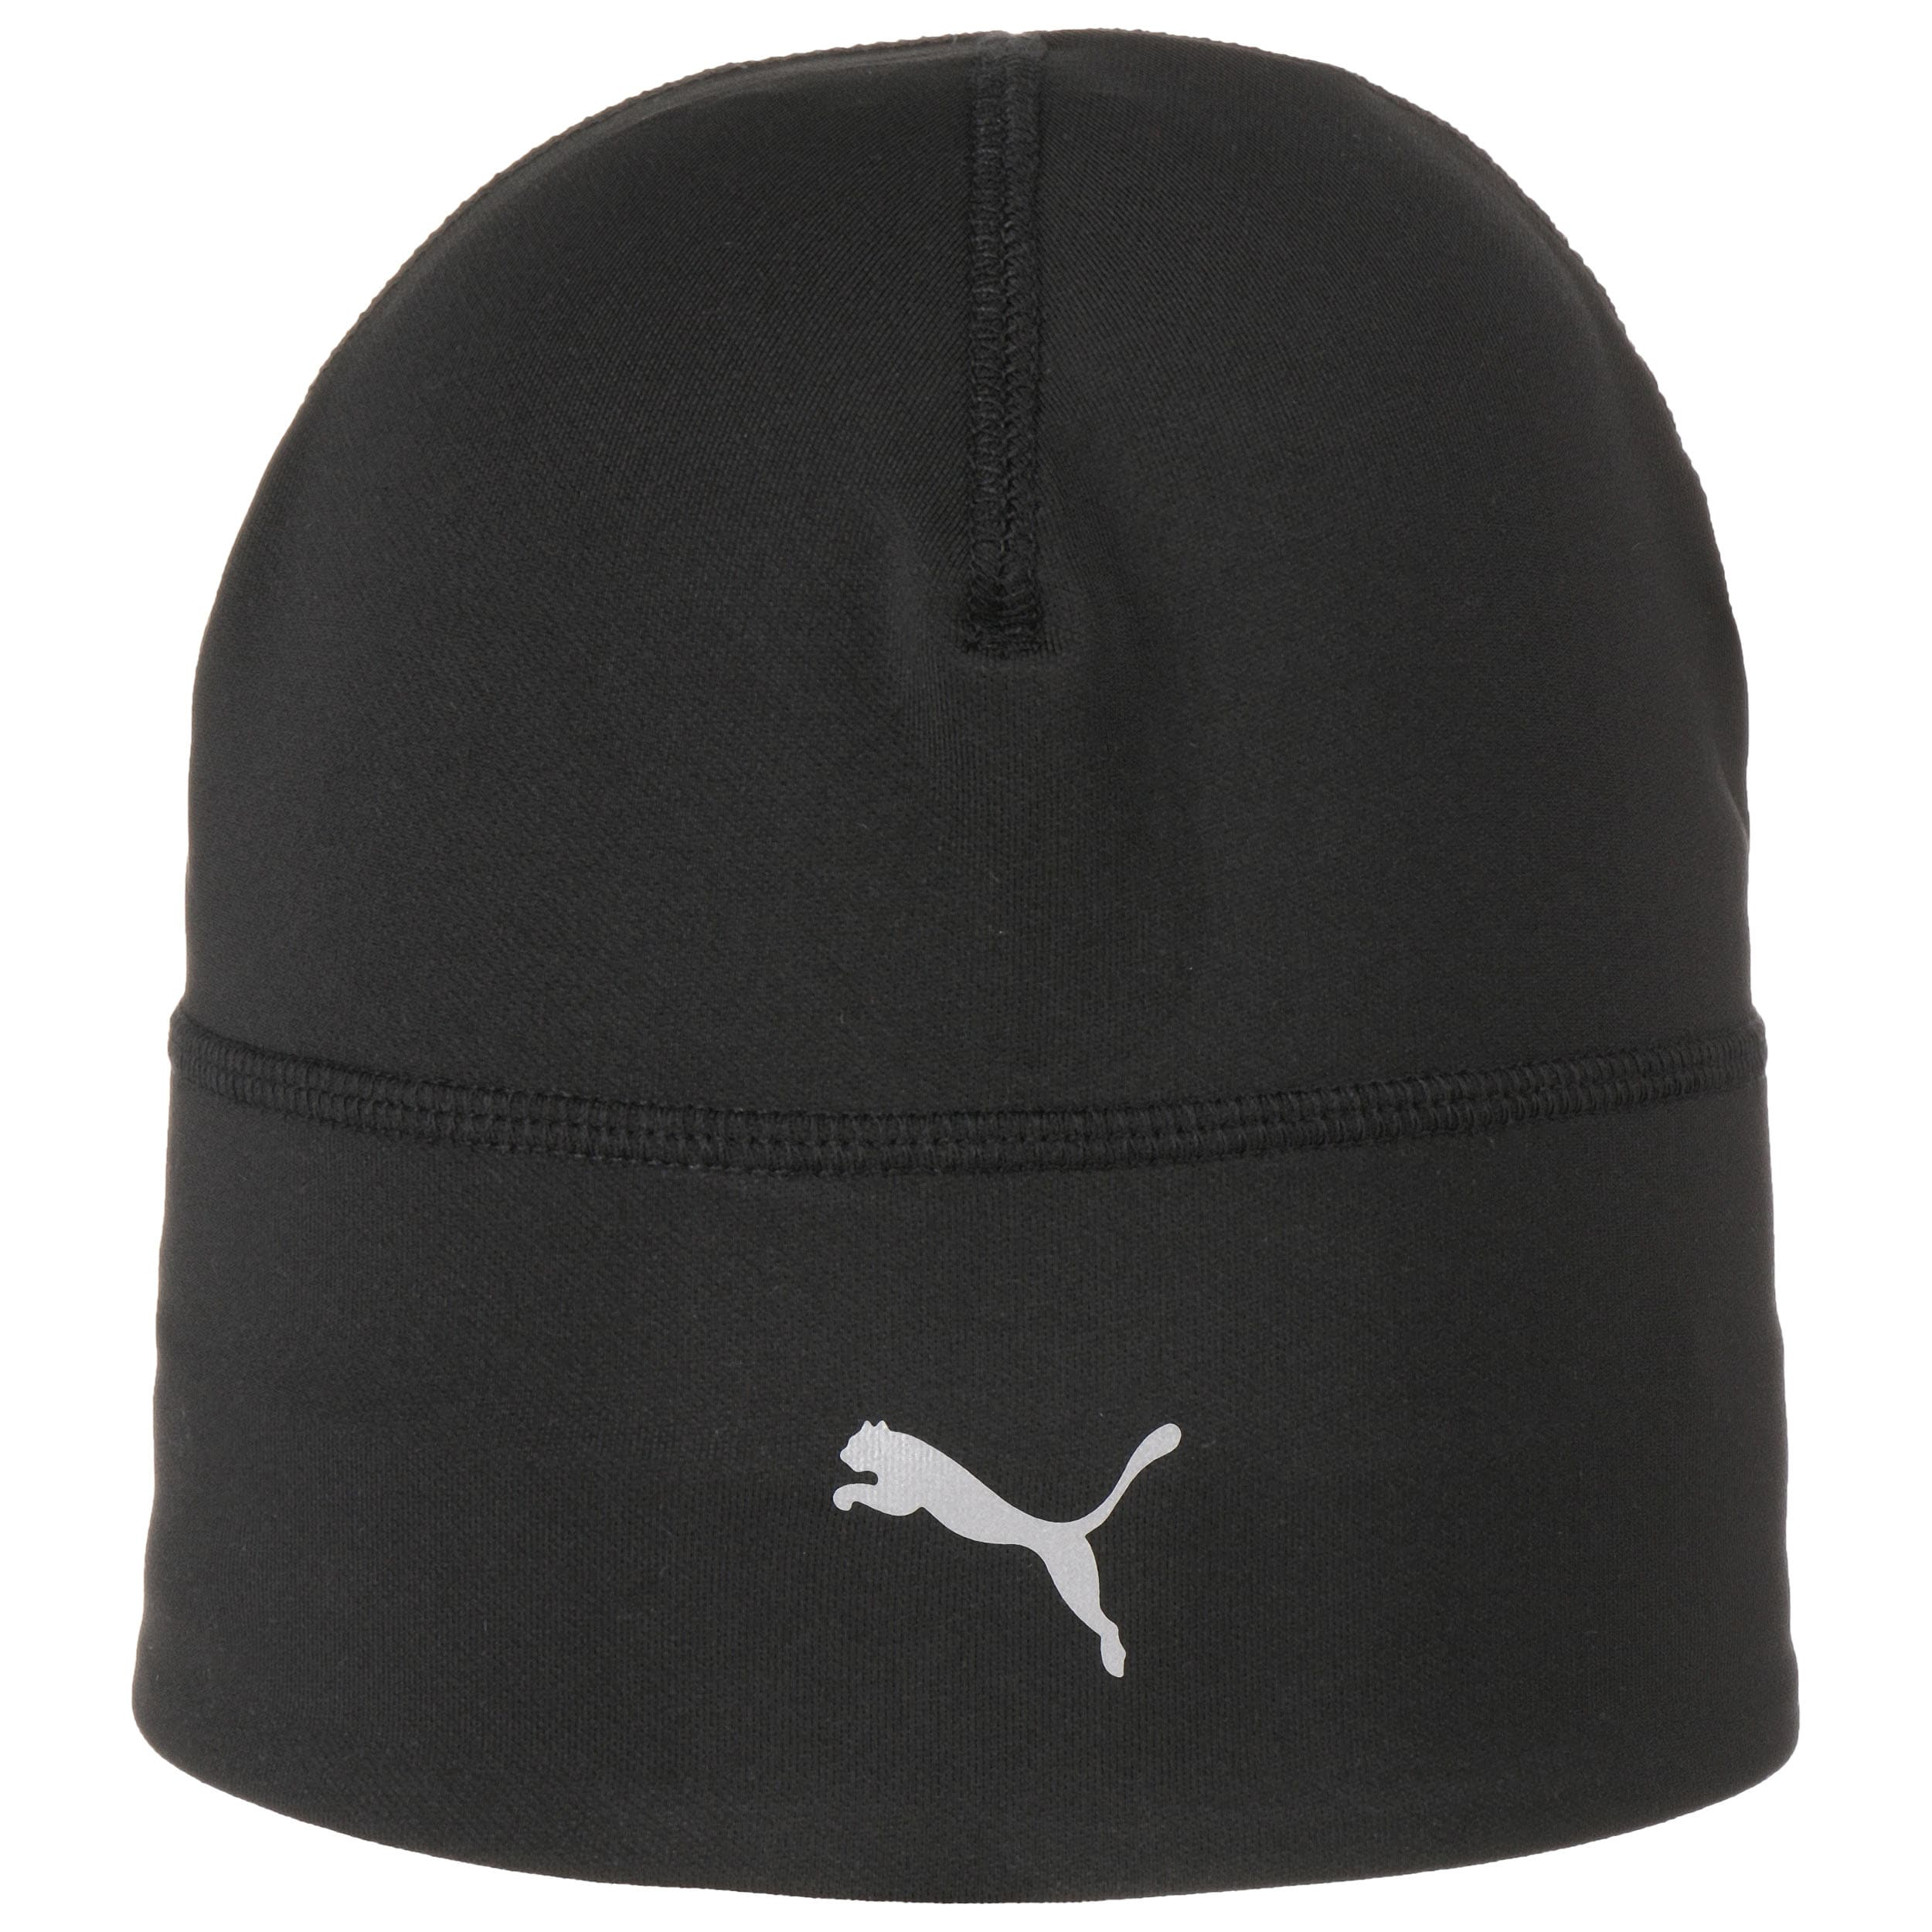 ... Reflective Running Hat by PUMA - black 2 ... 20aaf0438d0